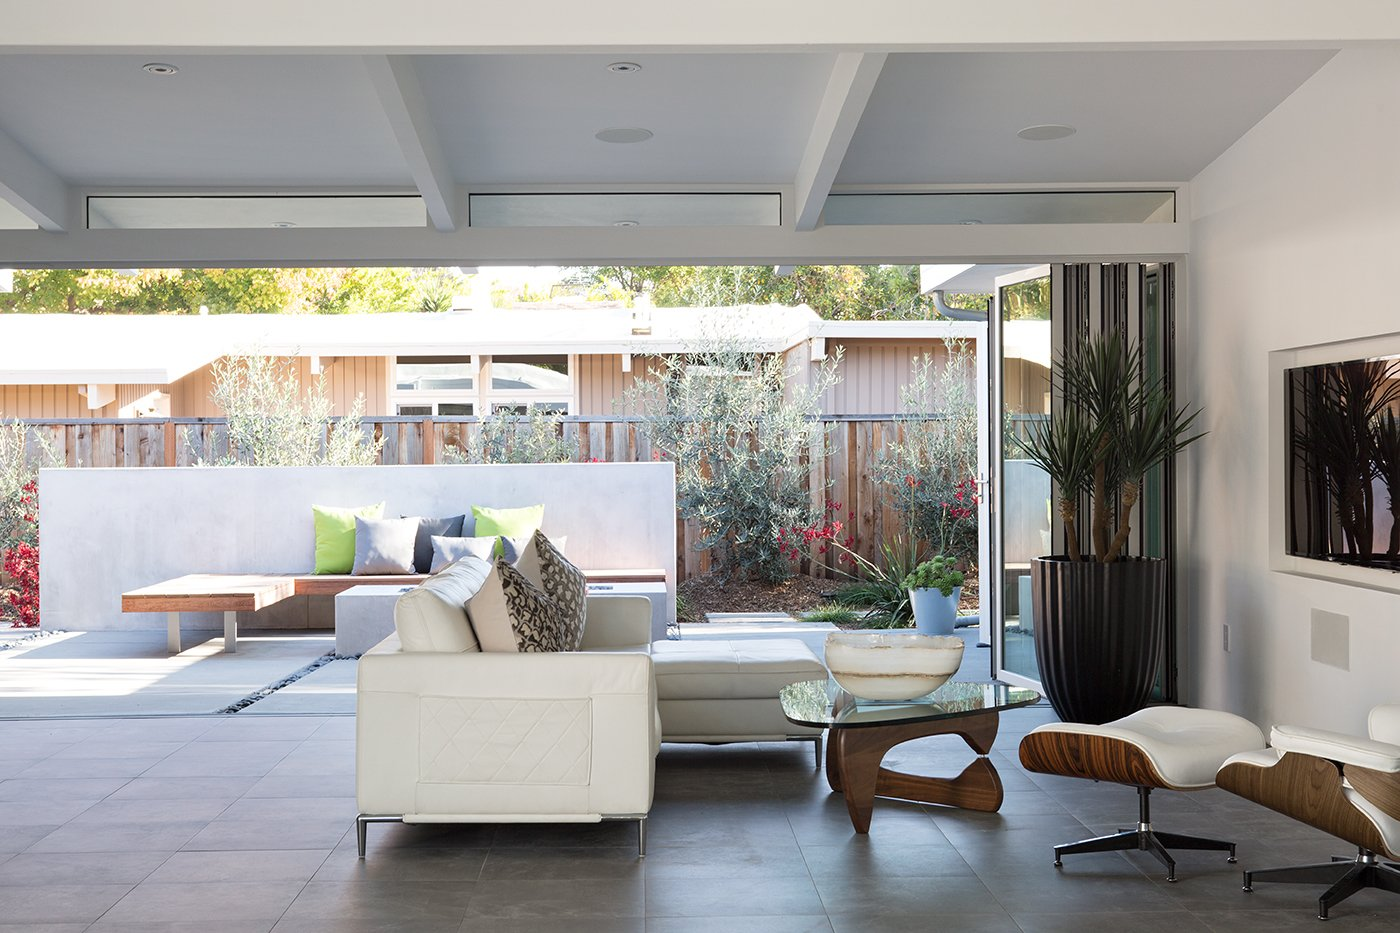 The home's sloping roofline guides the eye towards the outdoor living area. In the living room, occupants can relax in the Eames lounge.